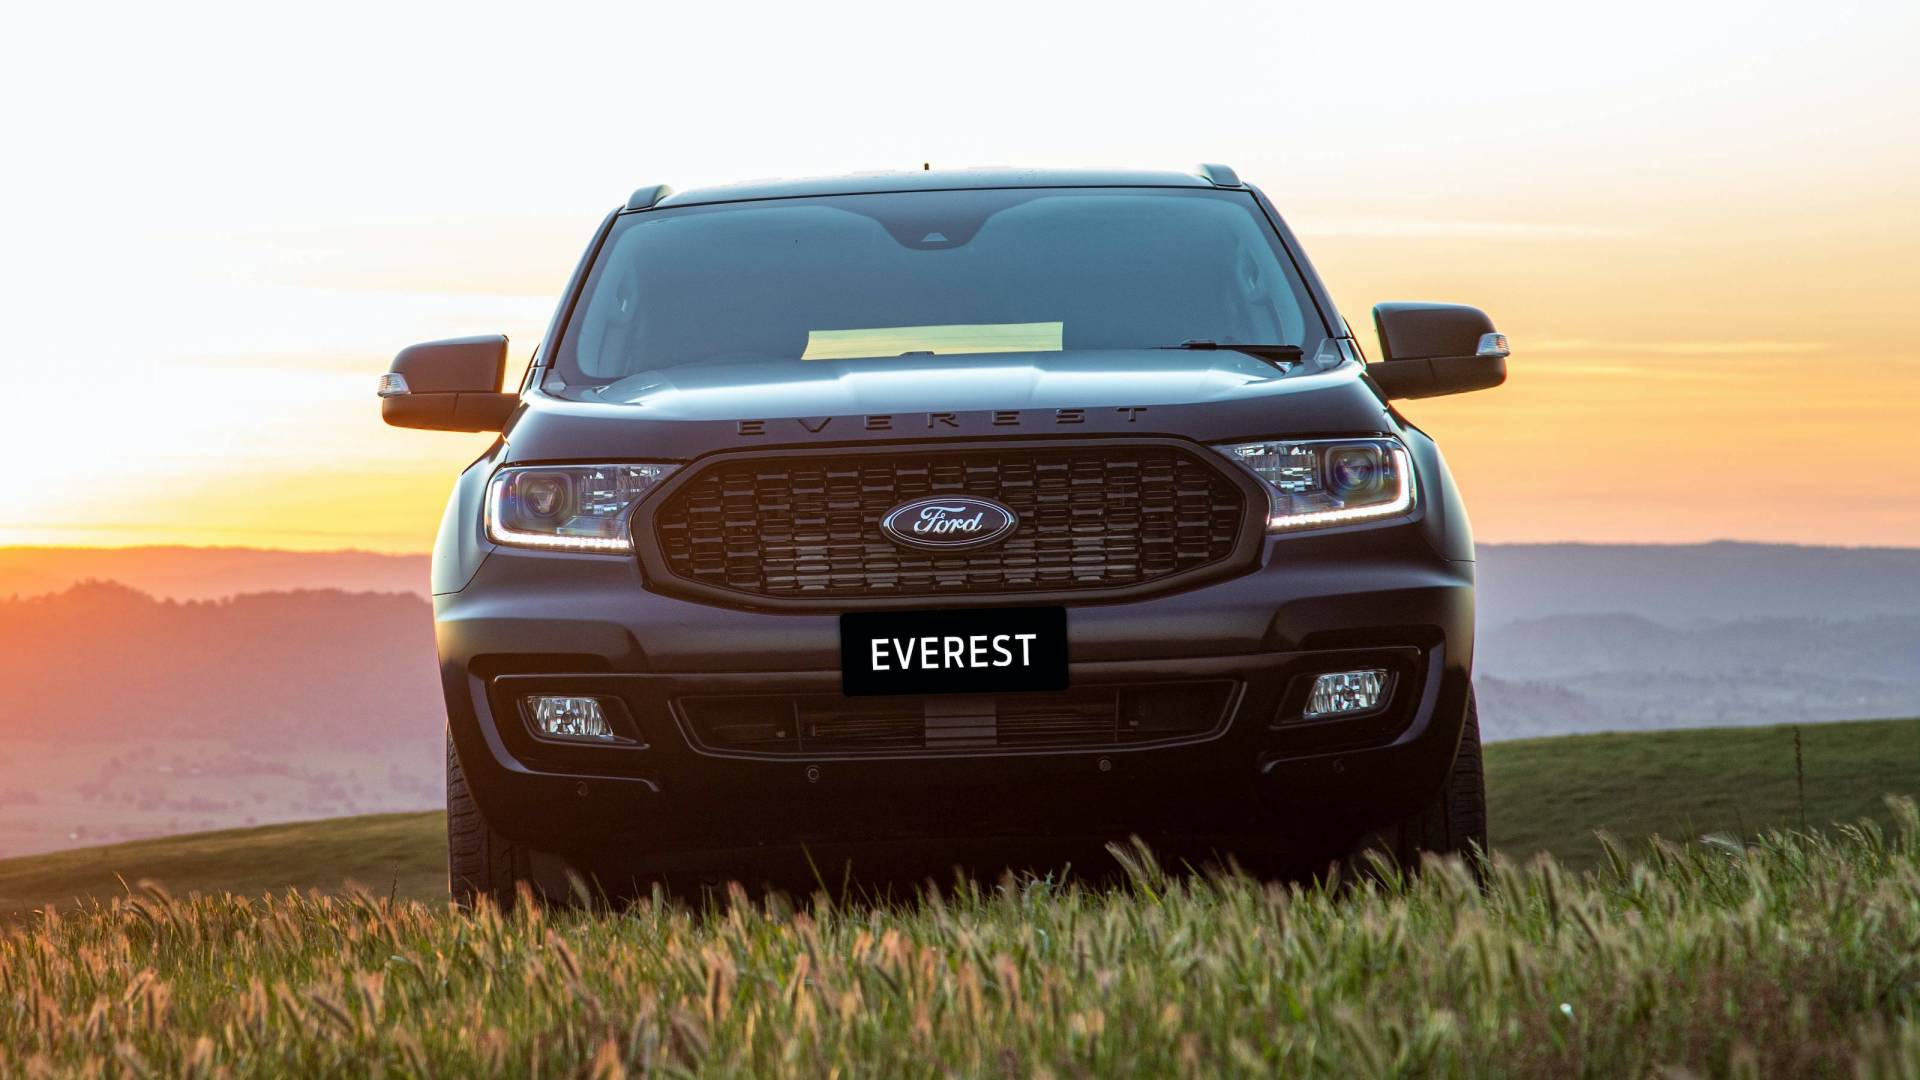 2020-ford-everest-sport-australia-spec-5.jpg